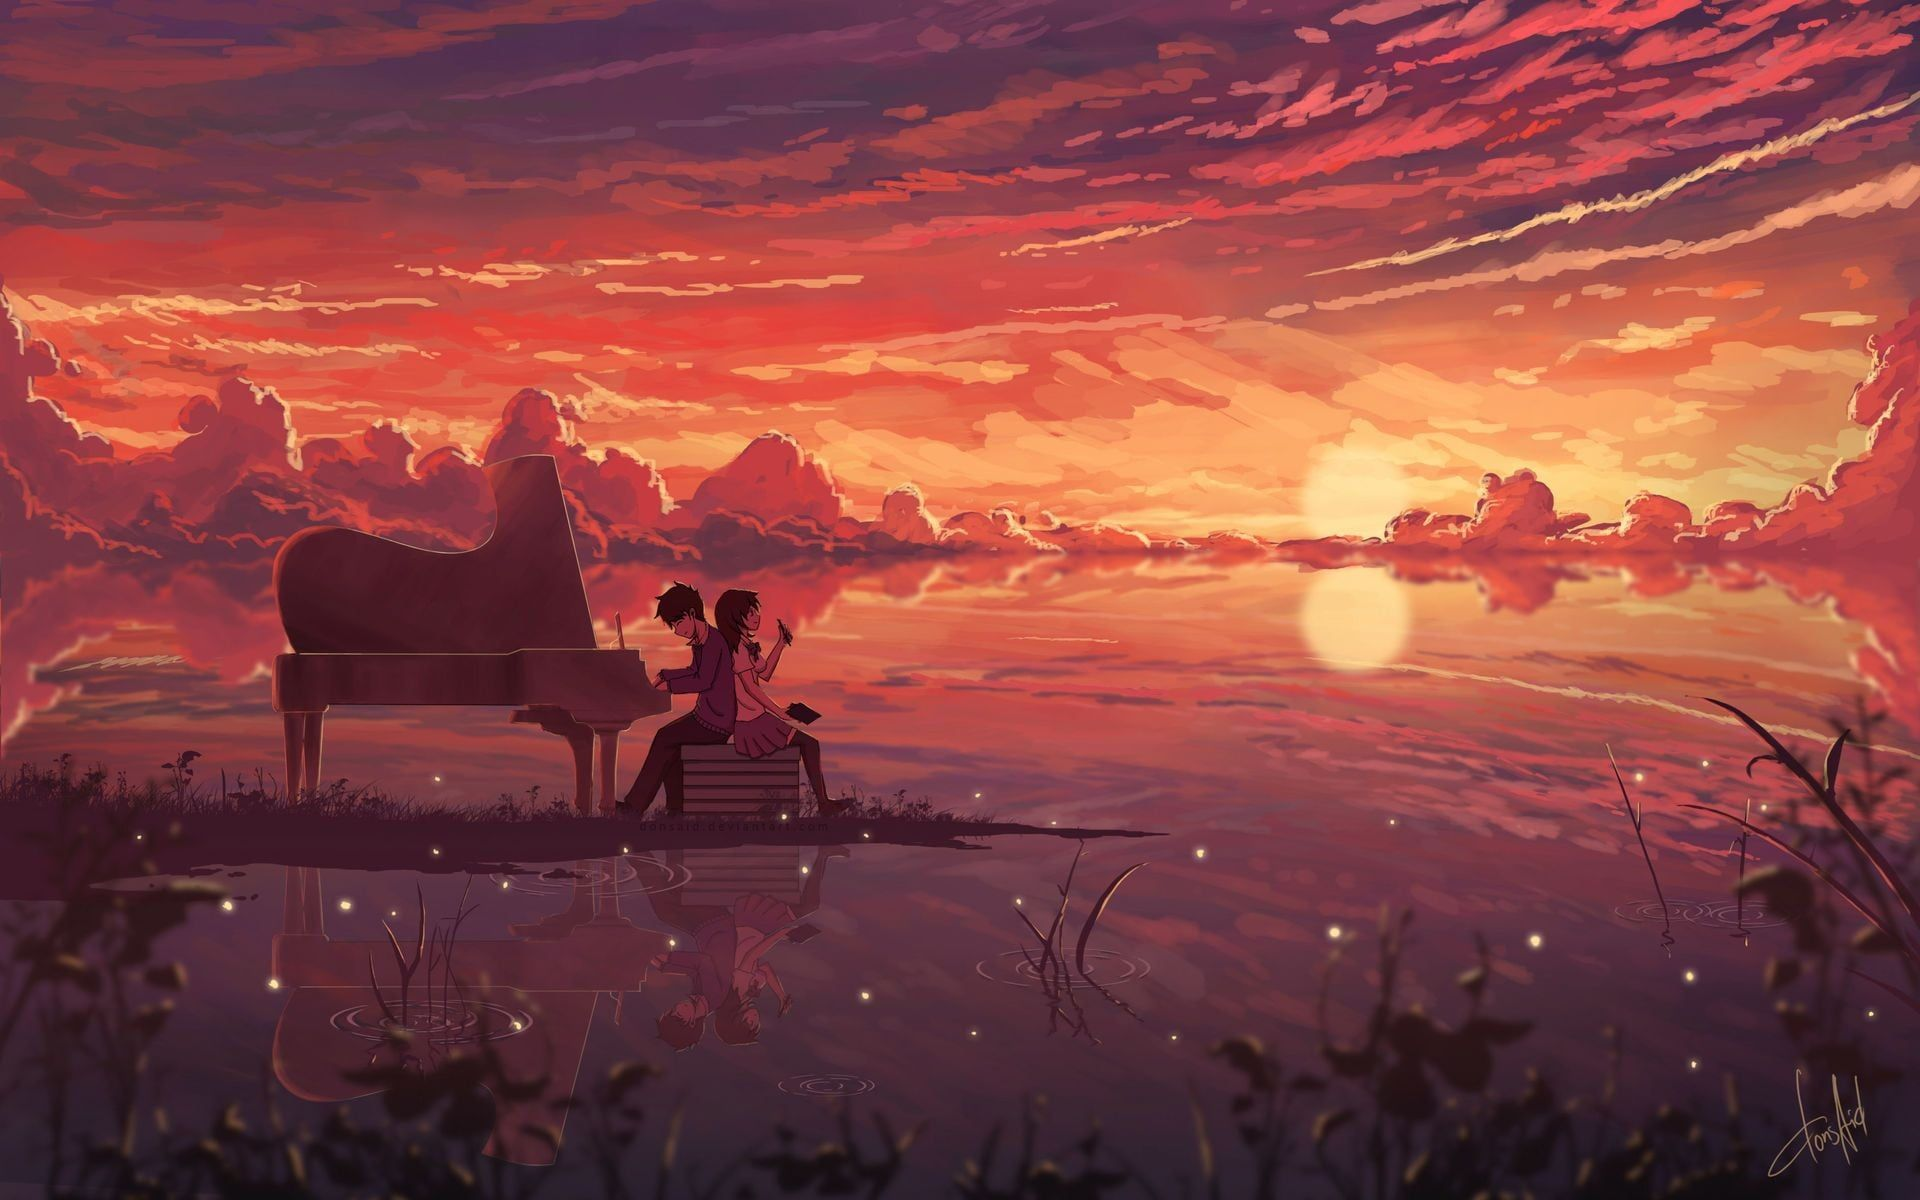 Couple Near Classical Piano Anime Digital Wallpaper Anime Manga Artwork Digital Art Illustration Couple Piano Anime Wallpaper Anime Scenery Art Wallpaper